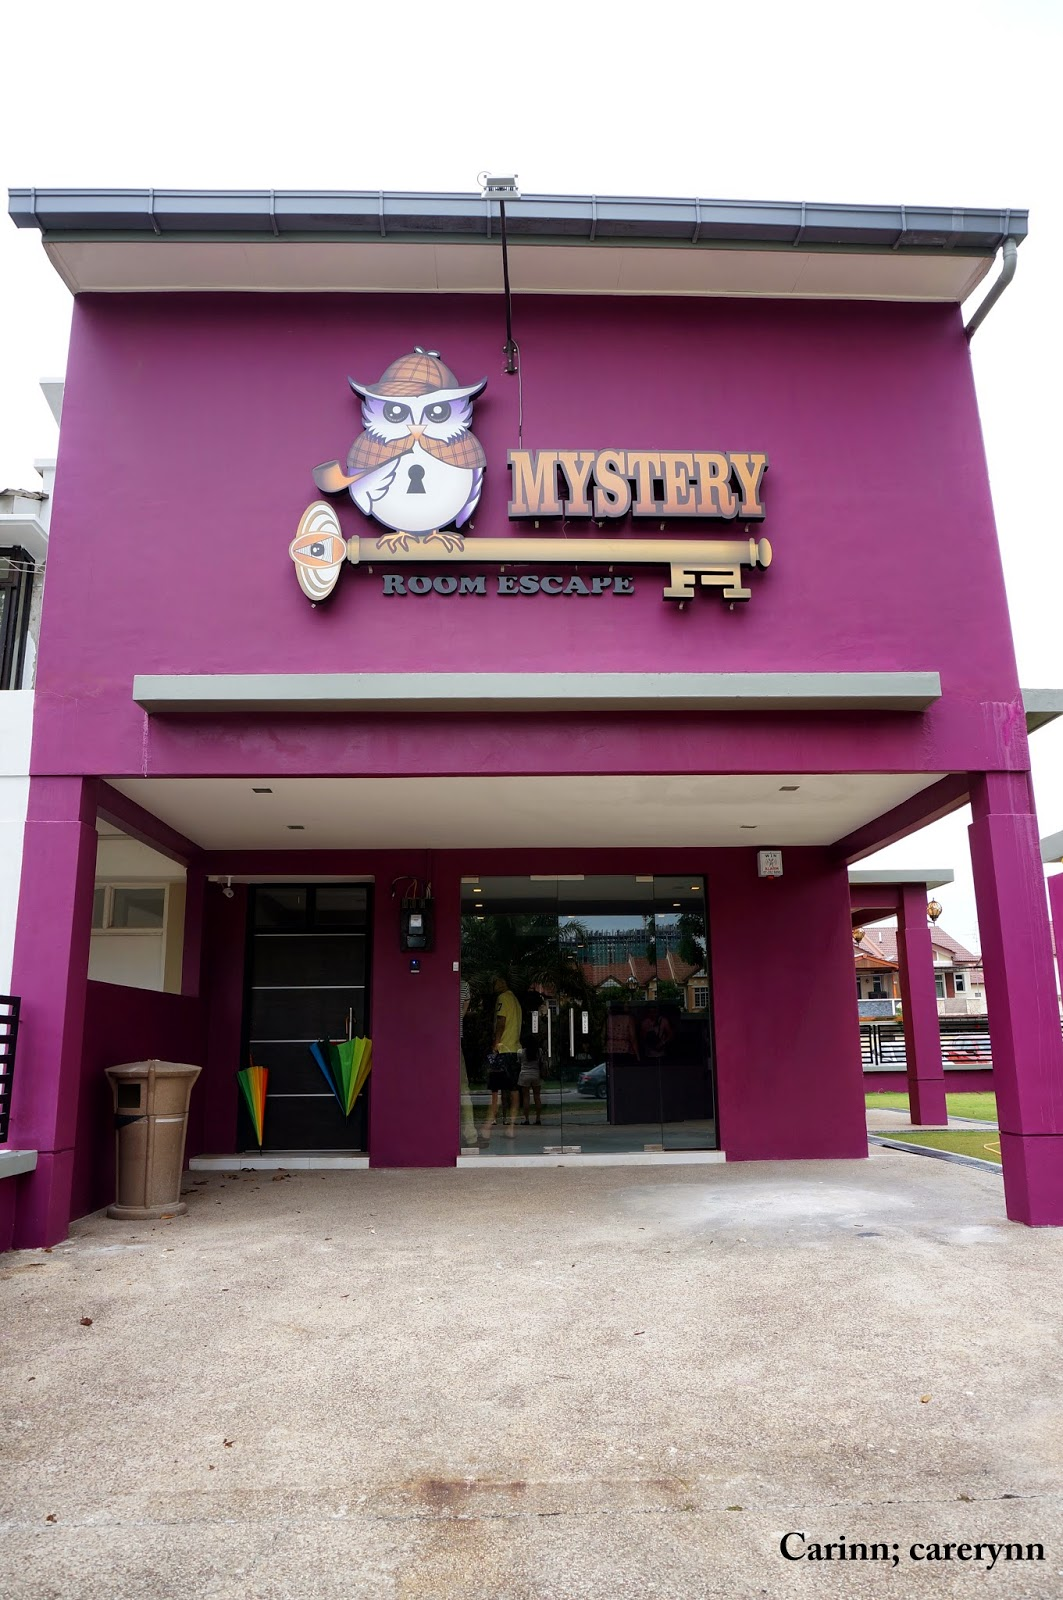 Mystery Escape Room Is Located At Bandar Jaya Putra Or Commonly Known As JP Perdana And Was Started Only About 6 Months Back